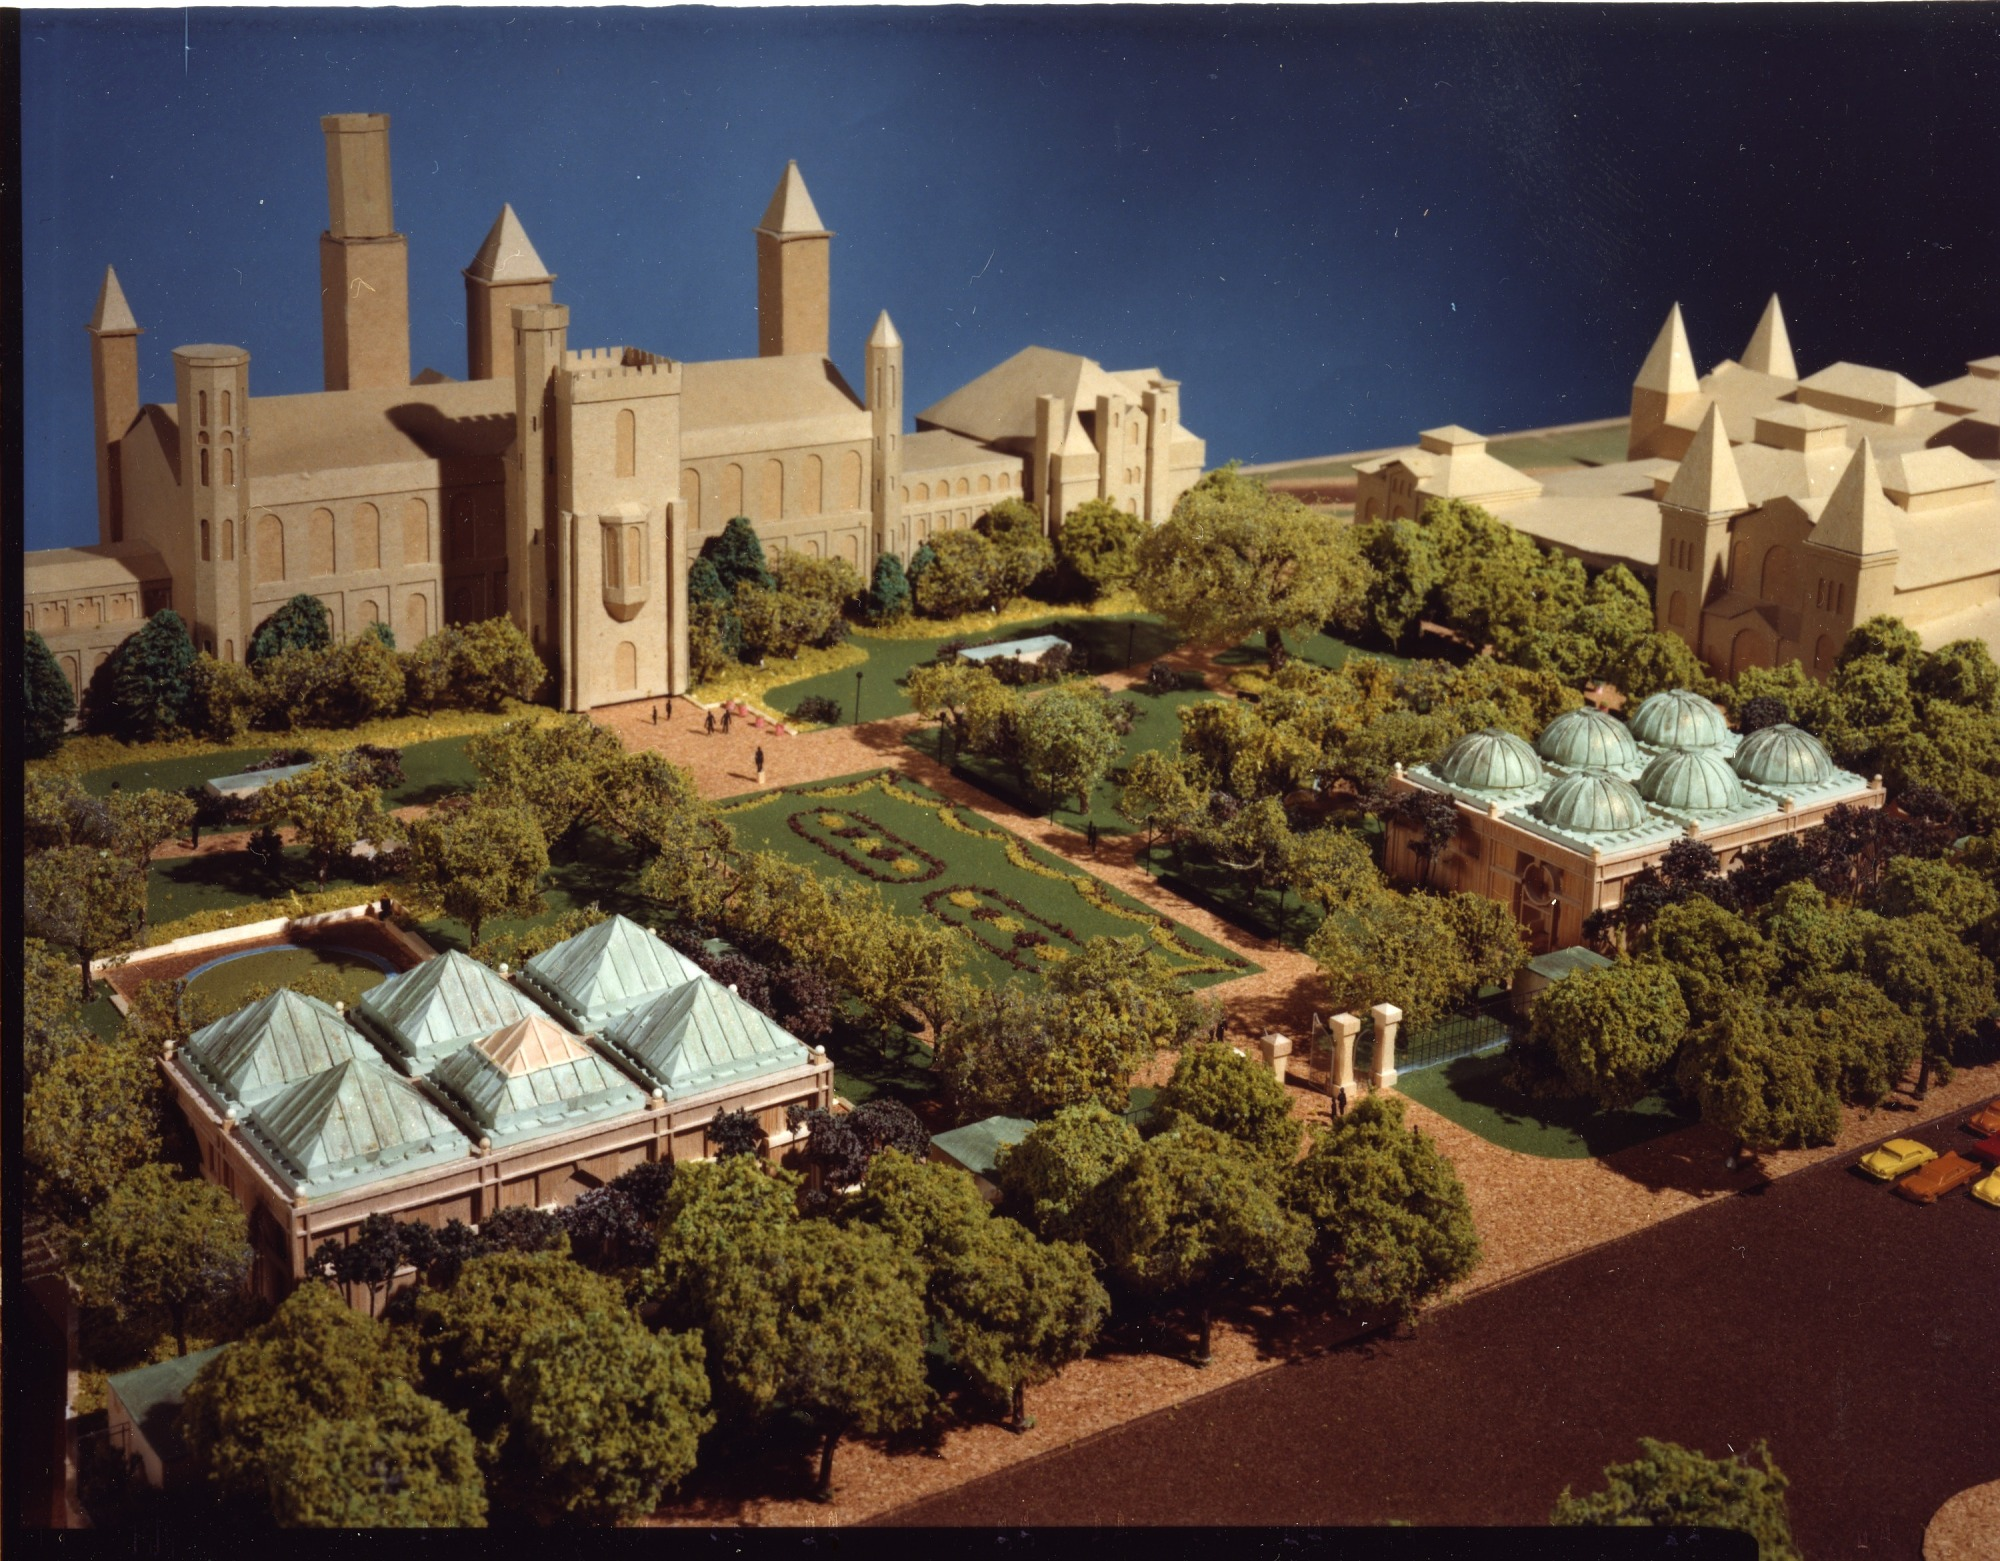 Model of the Quadrangle Viewed from the Southwest